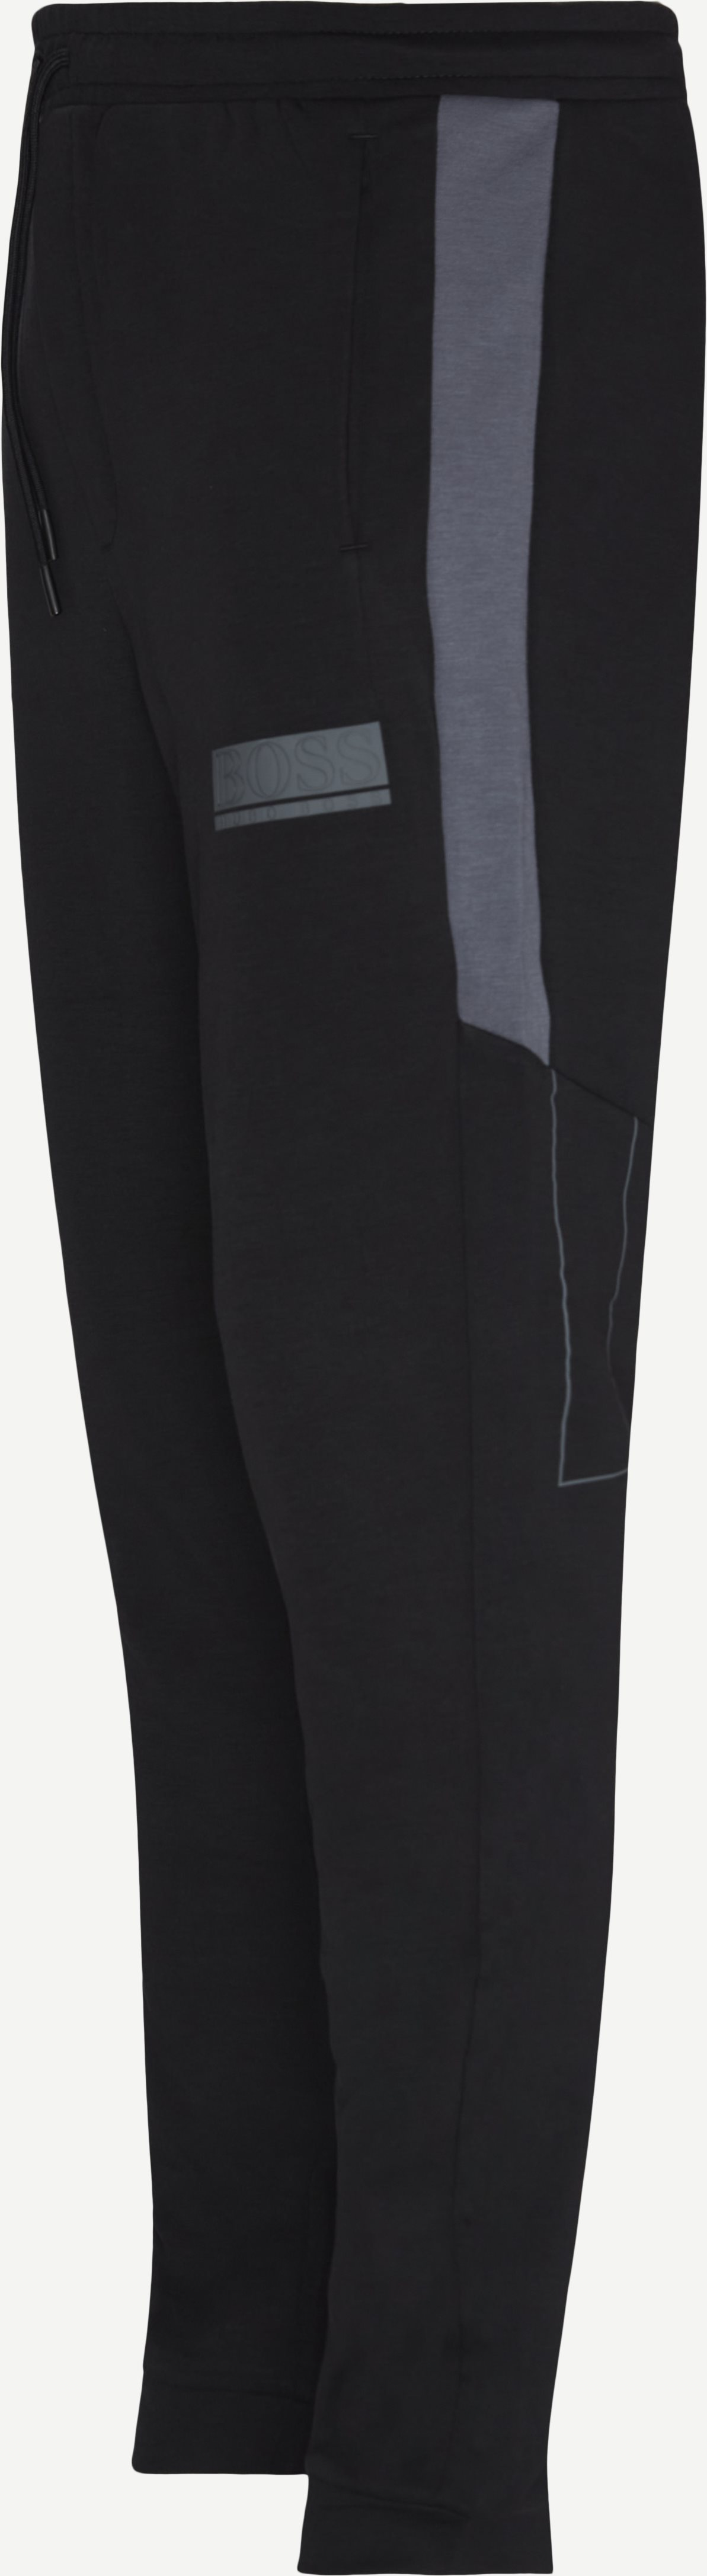 Halvo Sweatpant - Byxor - Regular - Svart